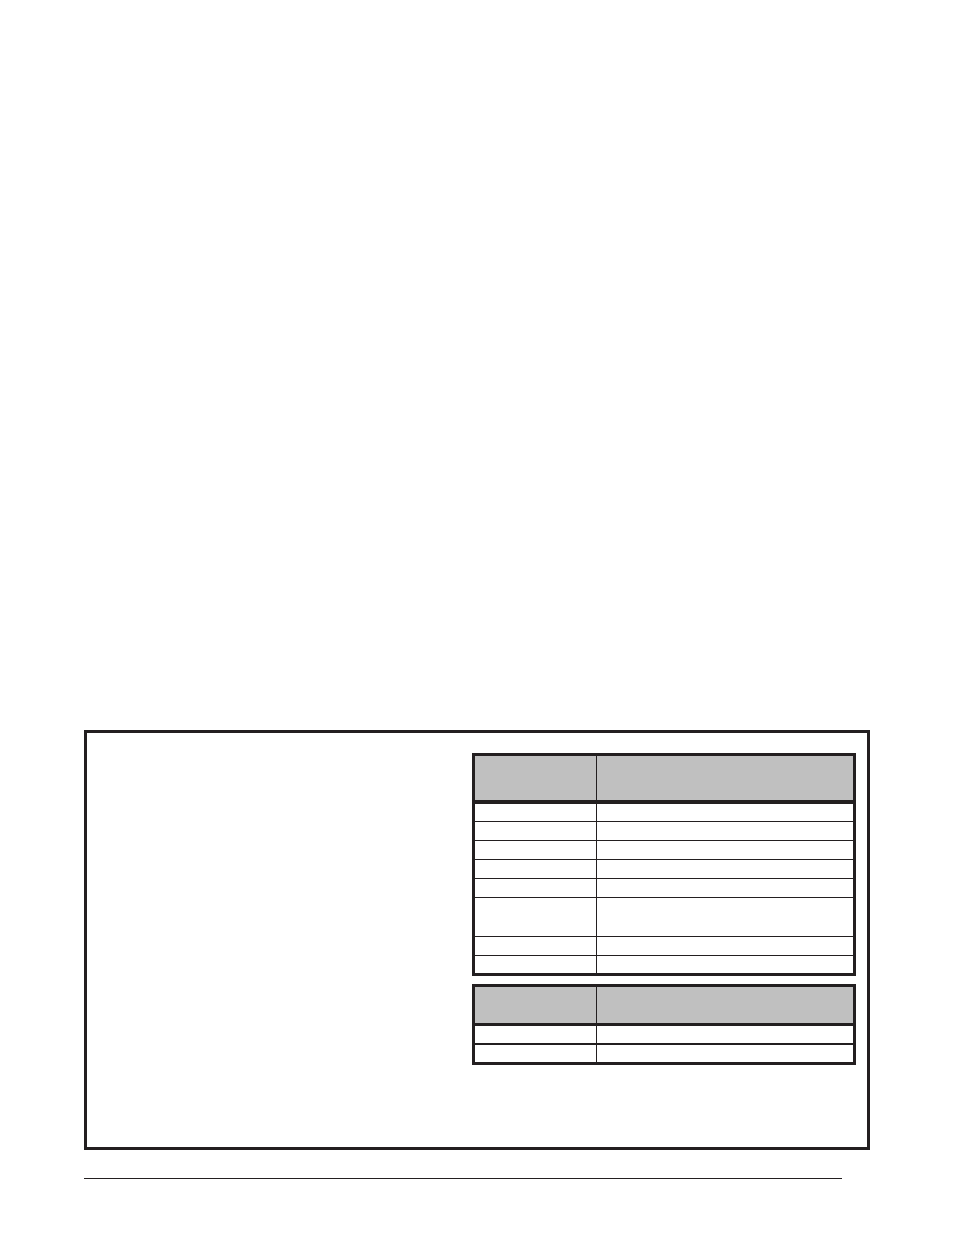 hight resolution of  reznor r6gd unit installation manual user manual page 23 36 on flasher relay wiring